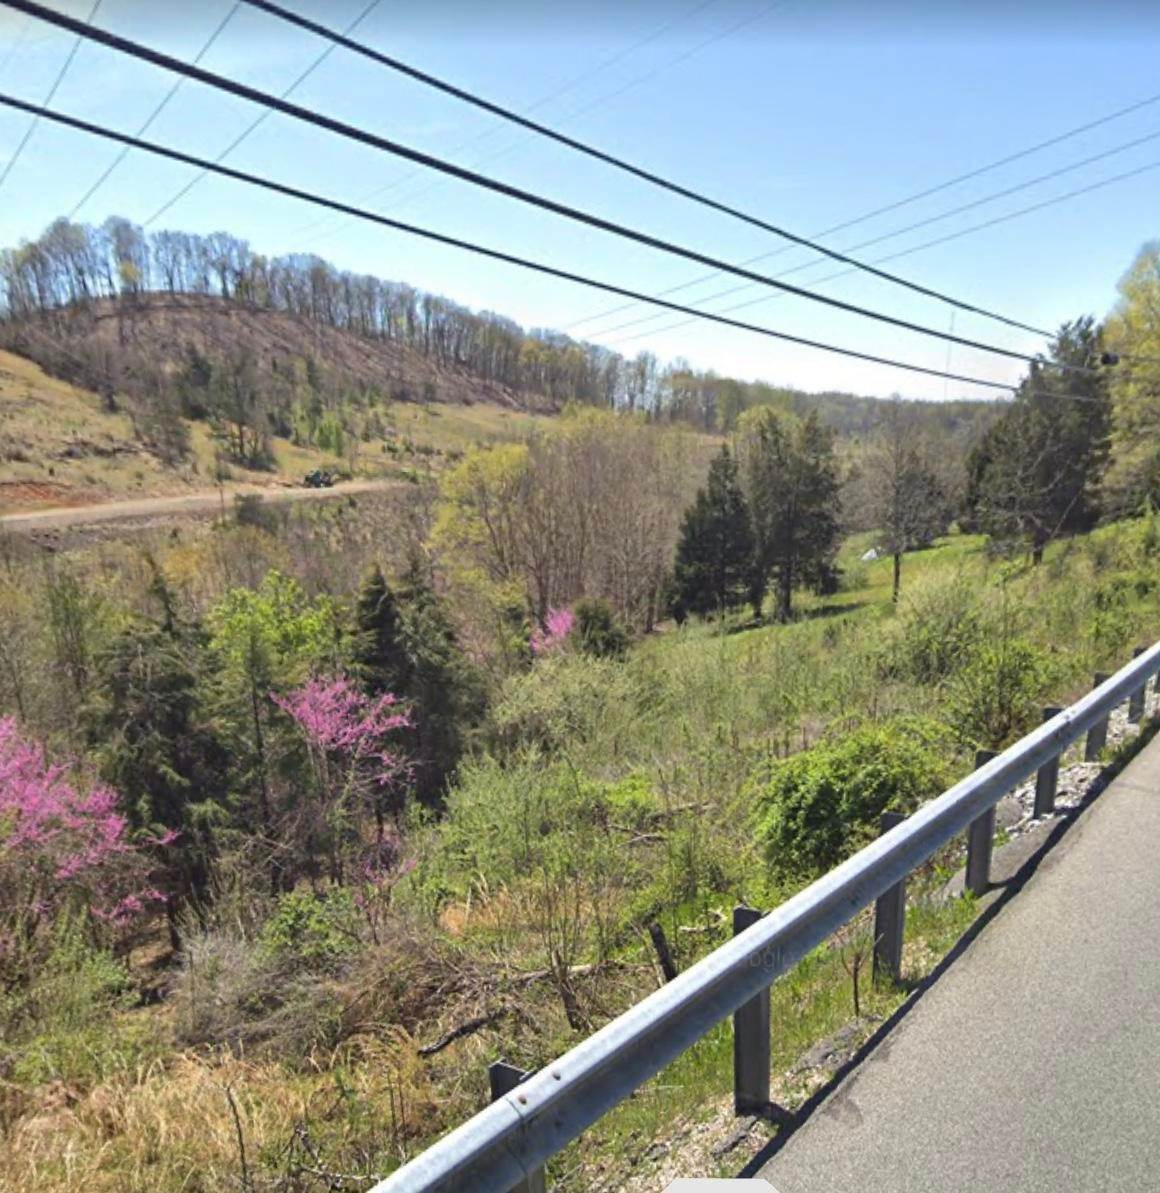 Land for Sale at Dunlap Road Kingsport, Tennessee 37663 United States